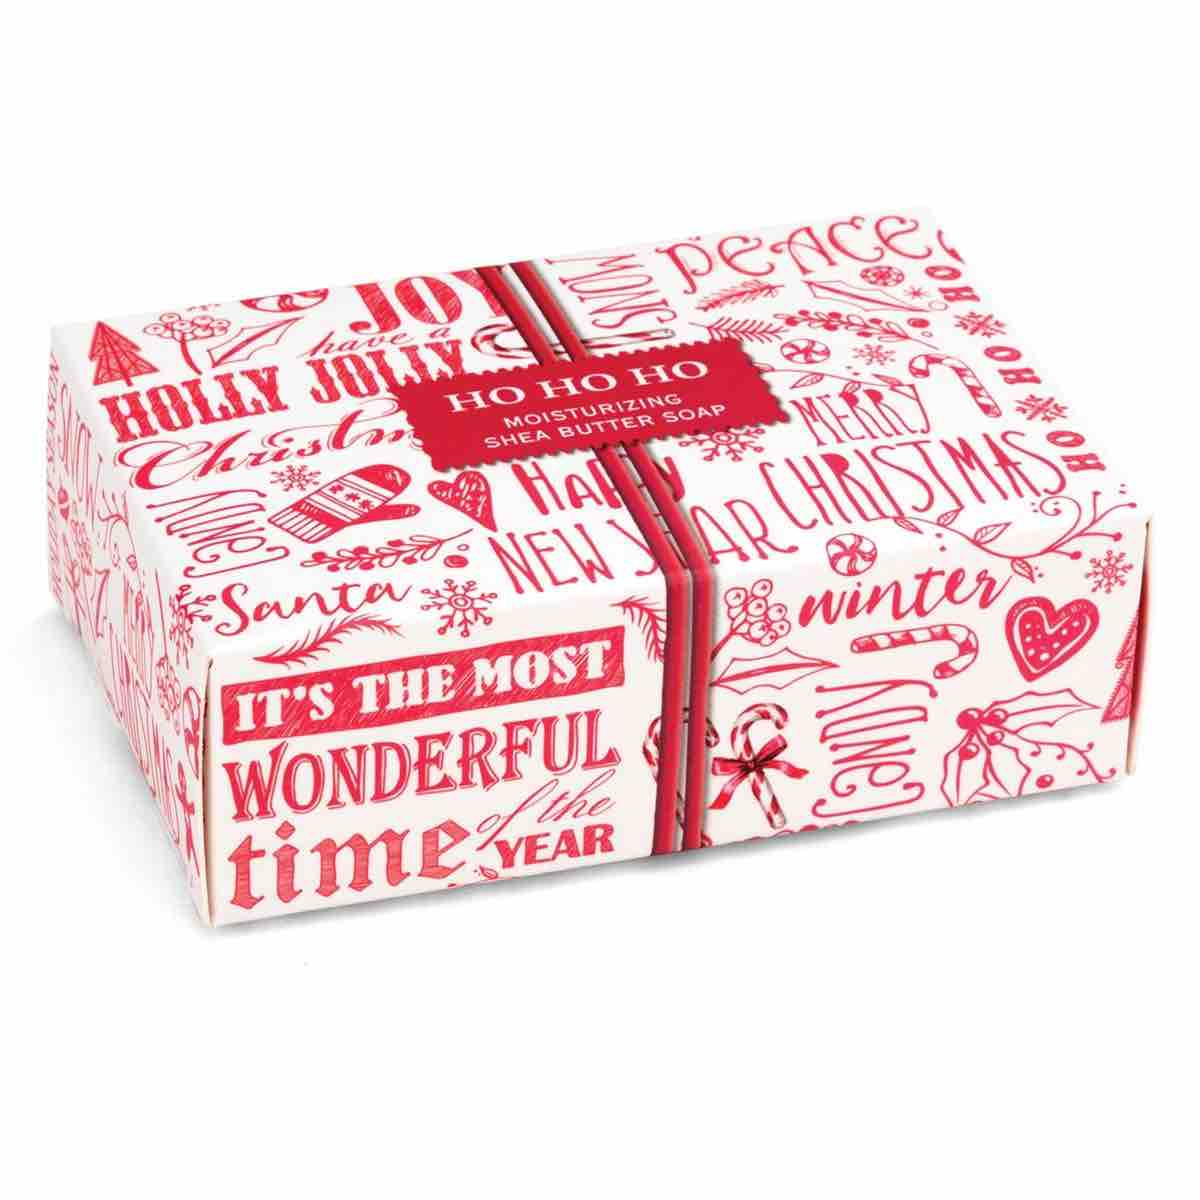 Michel Design Works Boxed Soap Bar | Ho Ho Ho